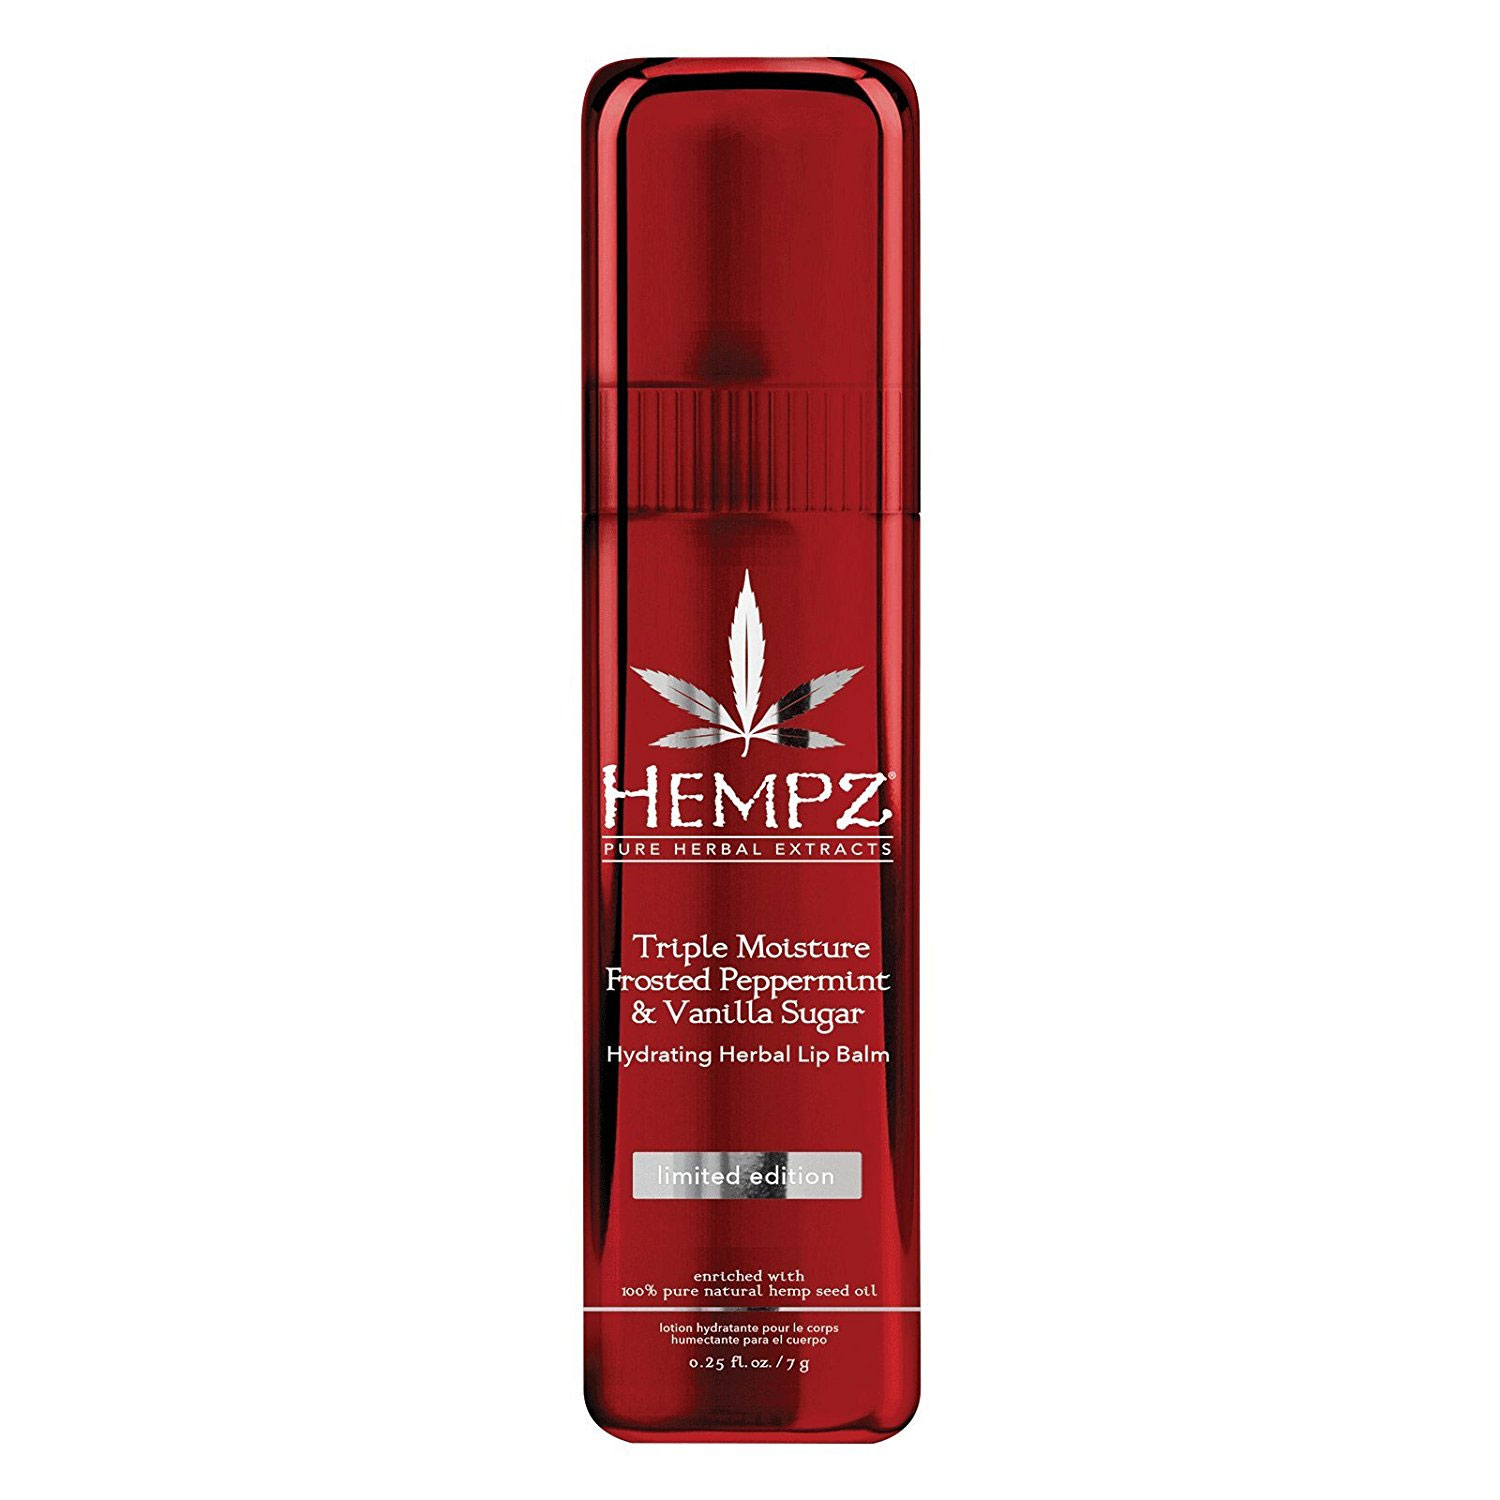 Image of Hempz Frosted Peppermint & Vanilla Sugar Herbal Lip Balm